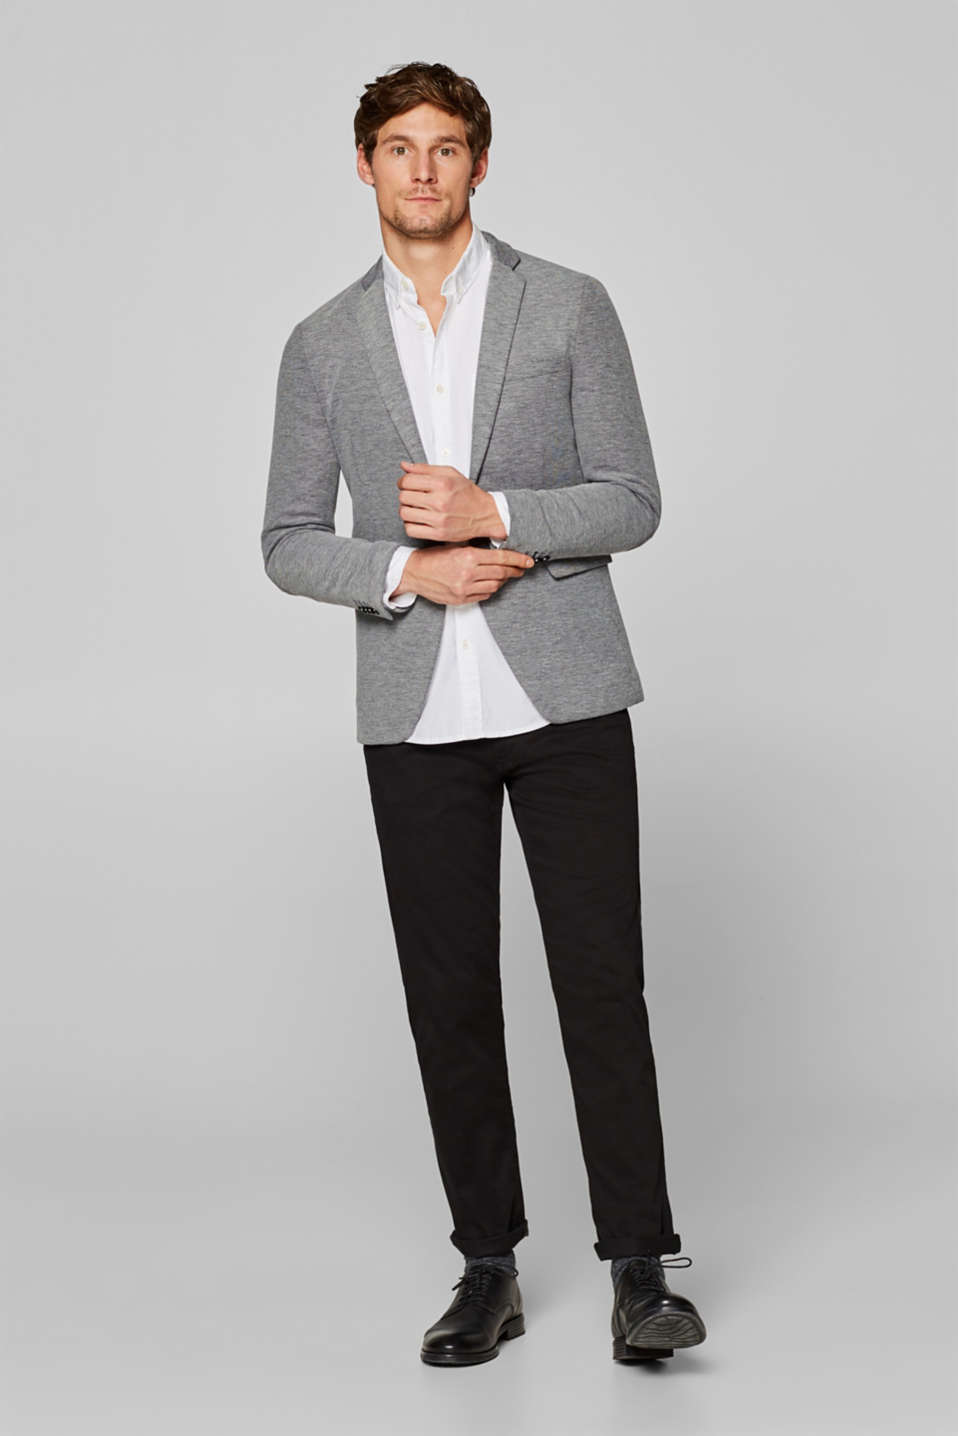 Mens blazer in black/white look, made of jersey